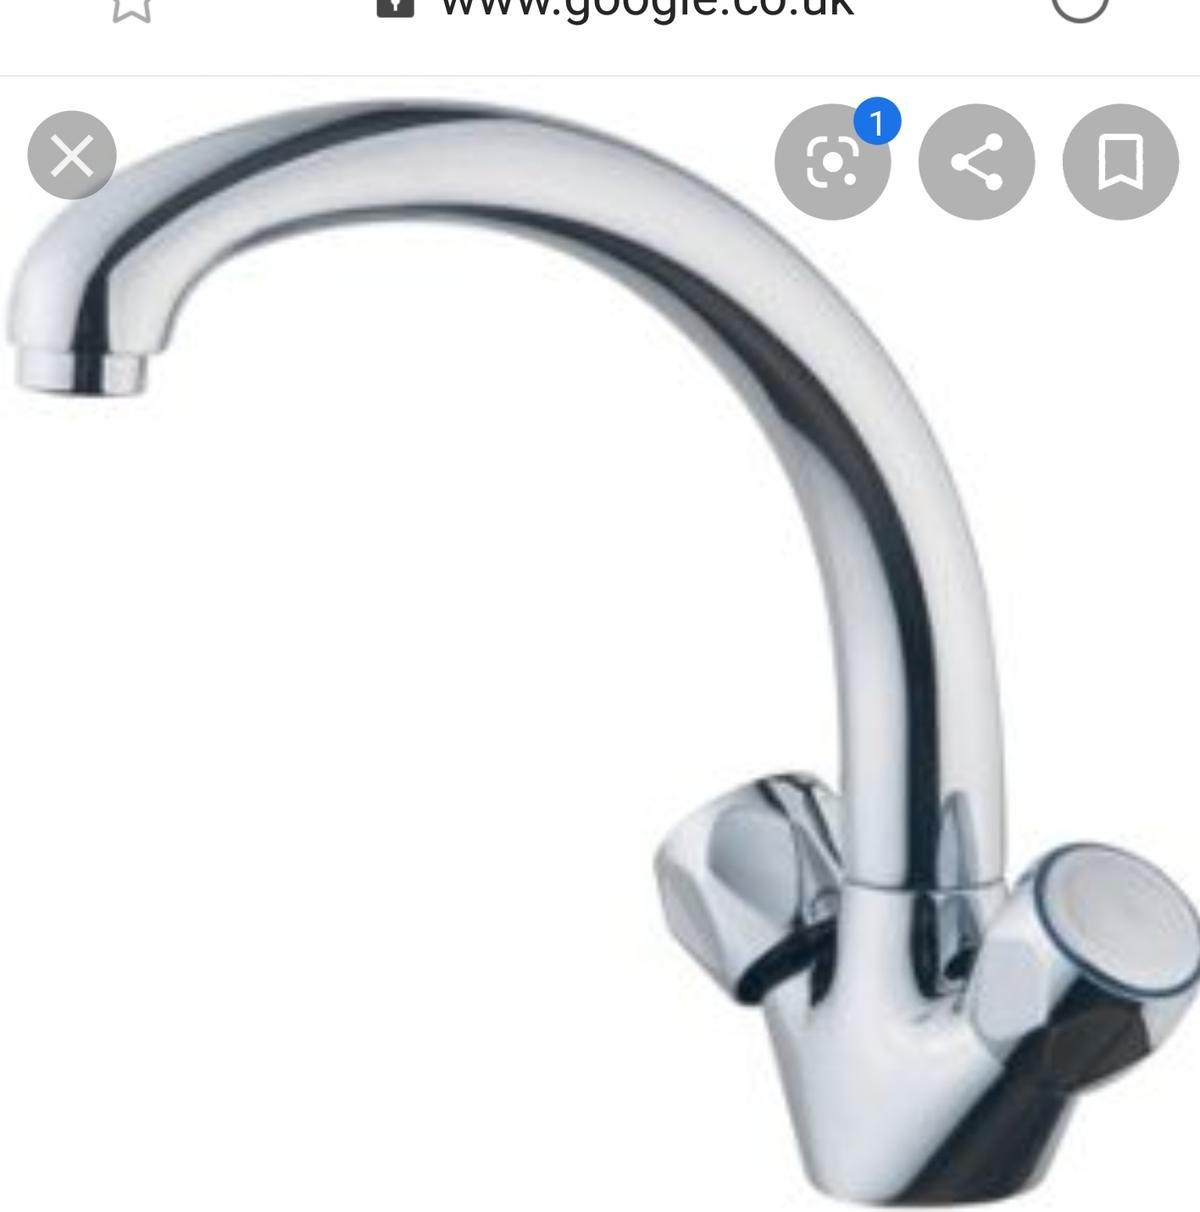 PRIVATE MESSAGE FOR AN INSTANT RESPONSE  SAME DAY SERVICE  COMBI BOILER REPLACED SUPPLY AND FIT £950 Gas cookers fitted Taps outside taps plumbing repairs Combi boilers replaced Gas fires capped Blocked sink bath toilet  Whats app or Text  07538 724 834